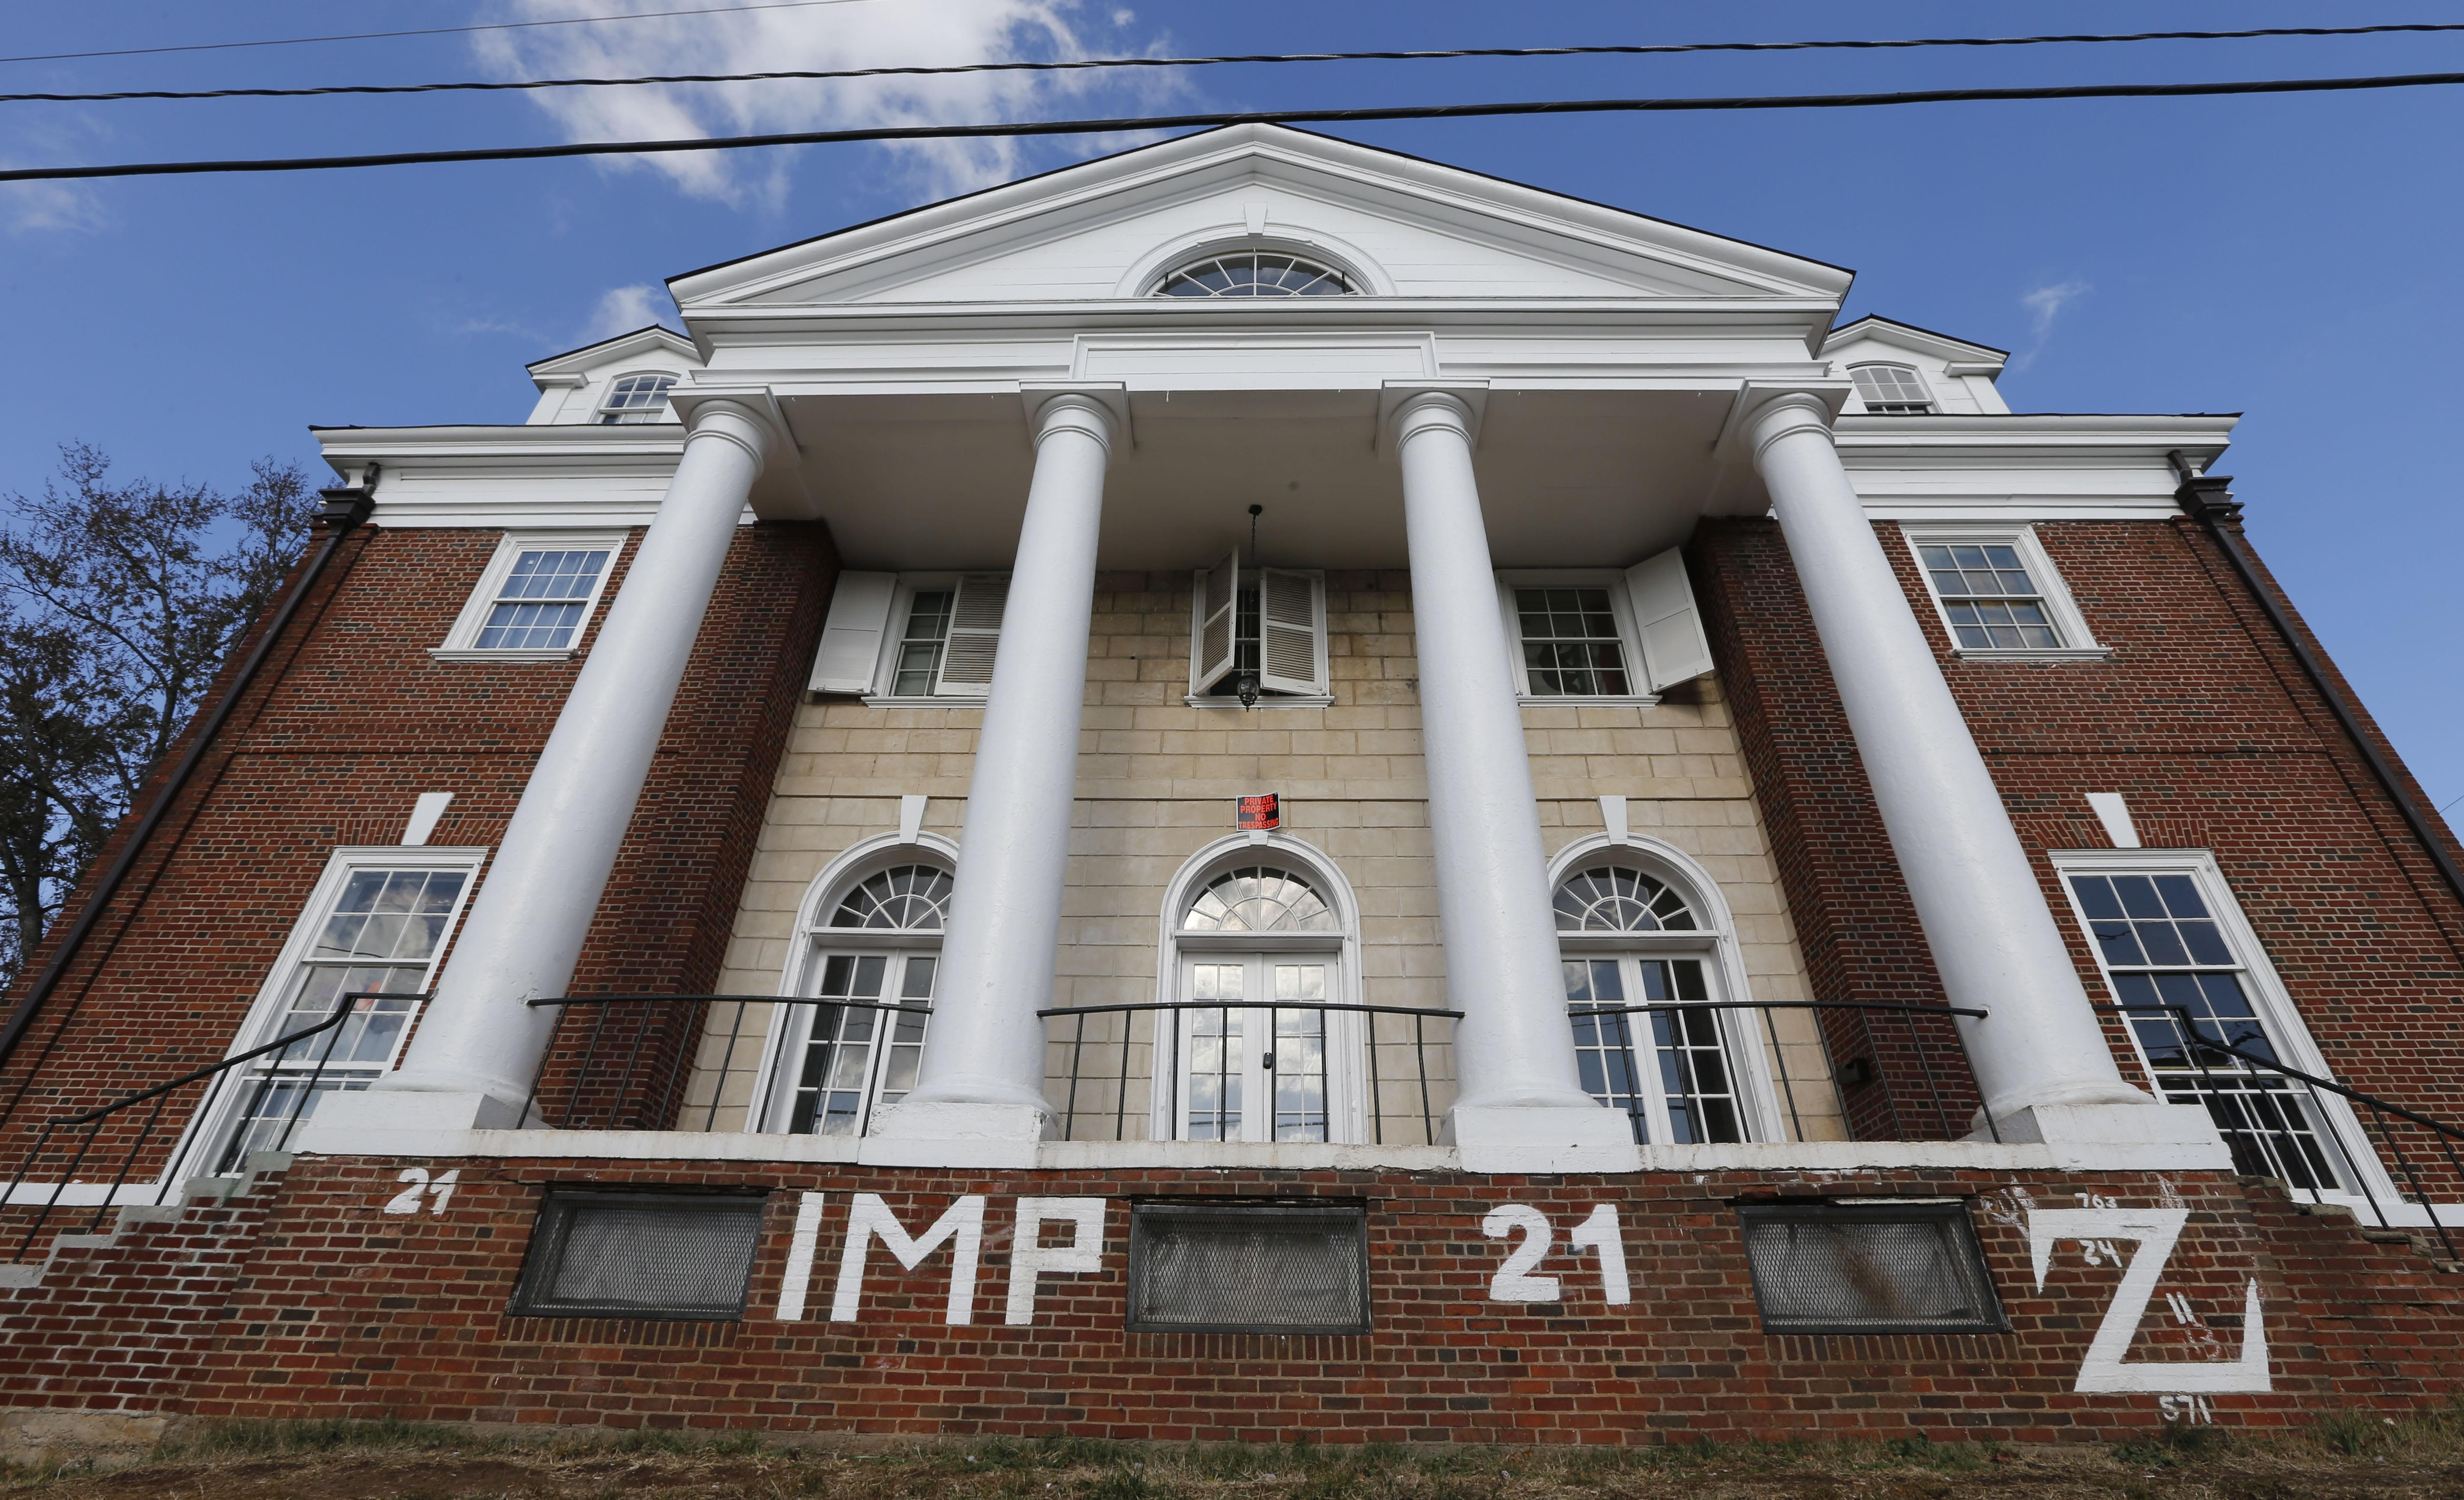 Phi Kappa Psi fraternity house at the University of Virginia